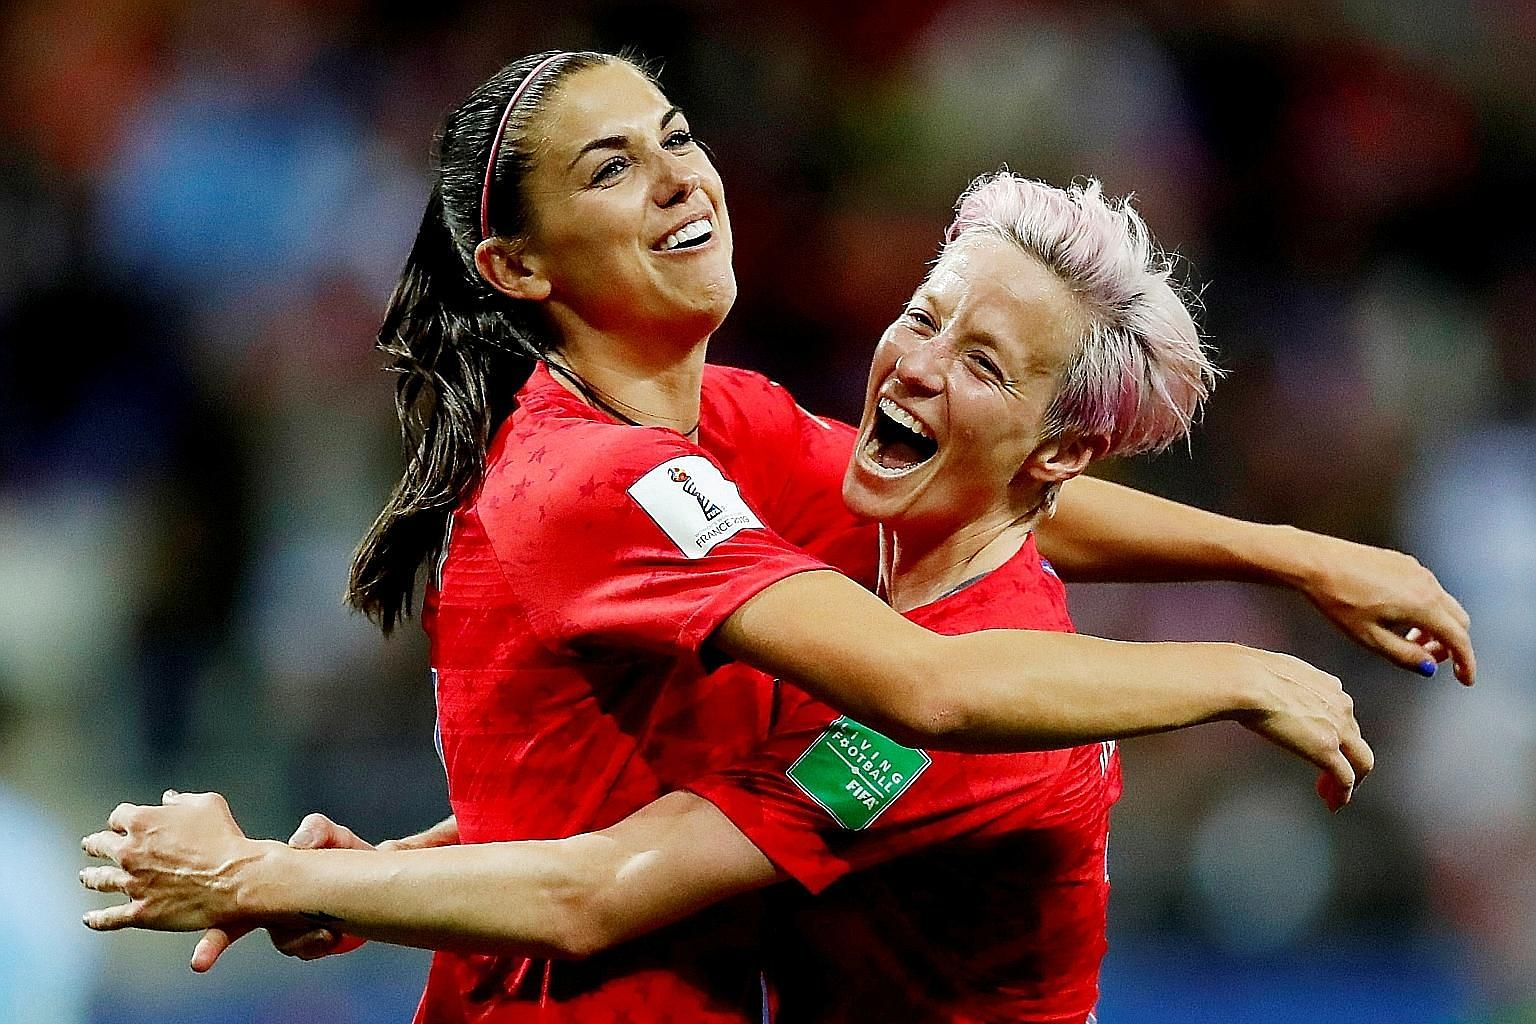 The US women's football team had their claims of being under paid by the USSF thrown out by a court last week. PHOTO: REUTERS